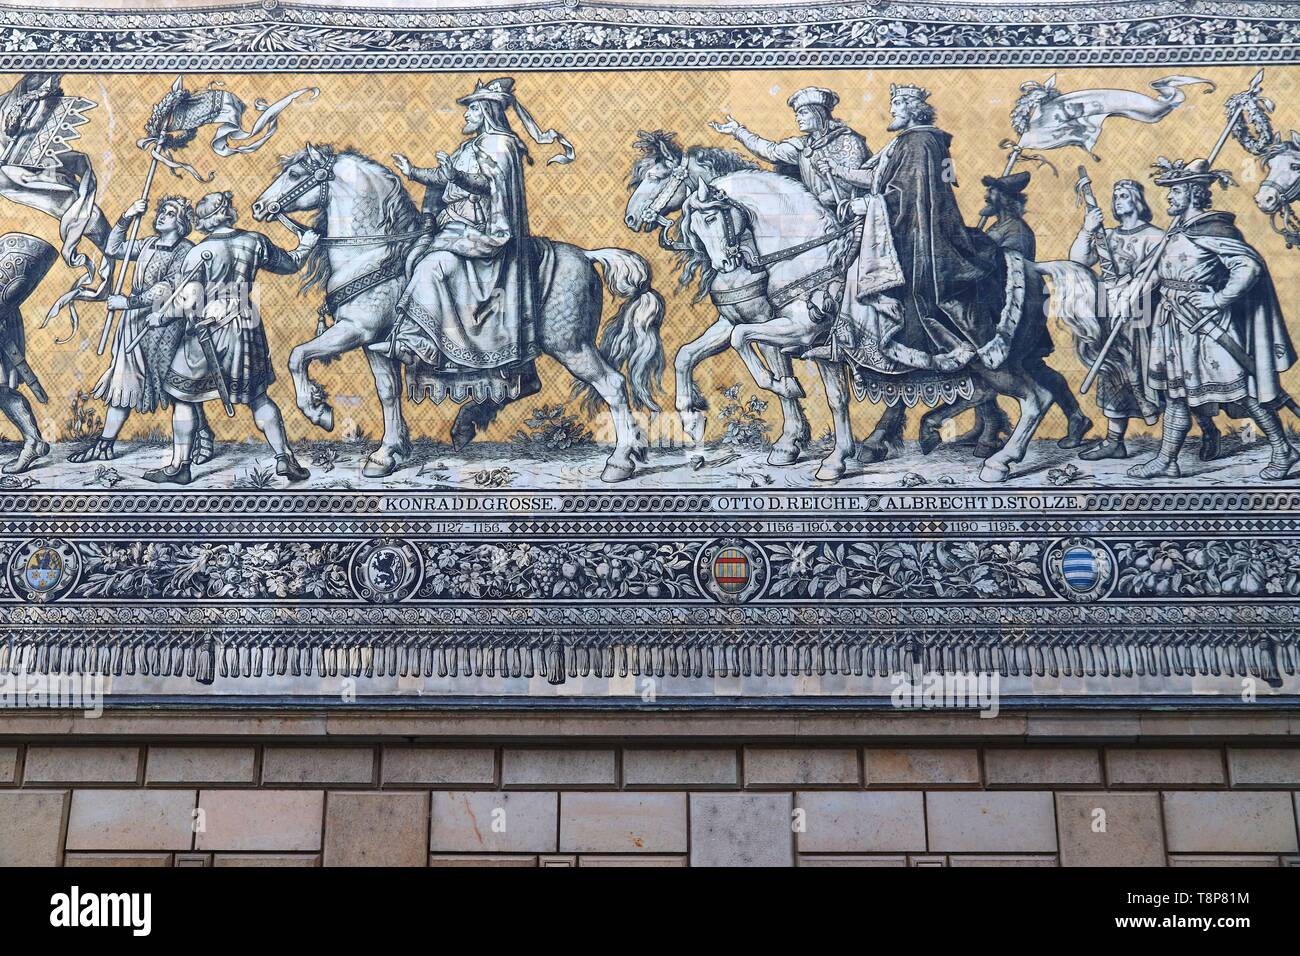 DRESDEN, GERMANY - MAY 10, 2018: Furstenzug (Procession of Princes), a mural mosaic of painted Meissen tiles depicting procession of rulers of Saxony. - Stock Image